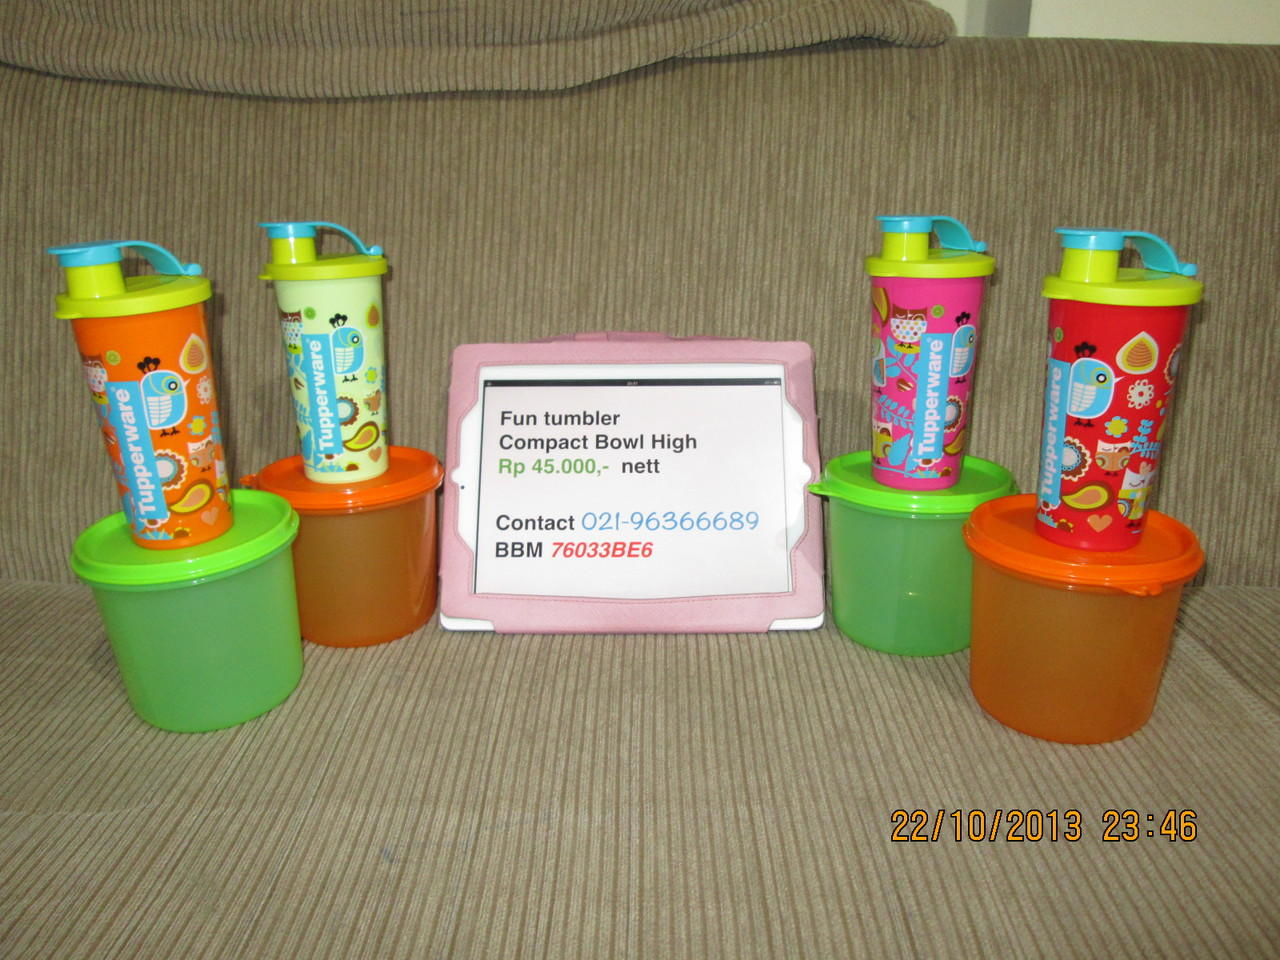 JUAL TUPPERWARE FIRST DELIGHT Rp 196500 WTS